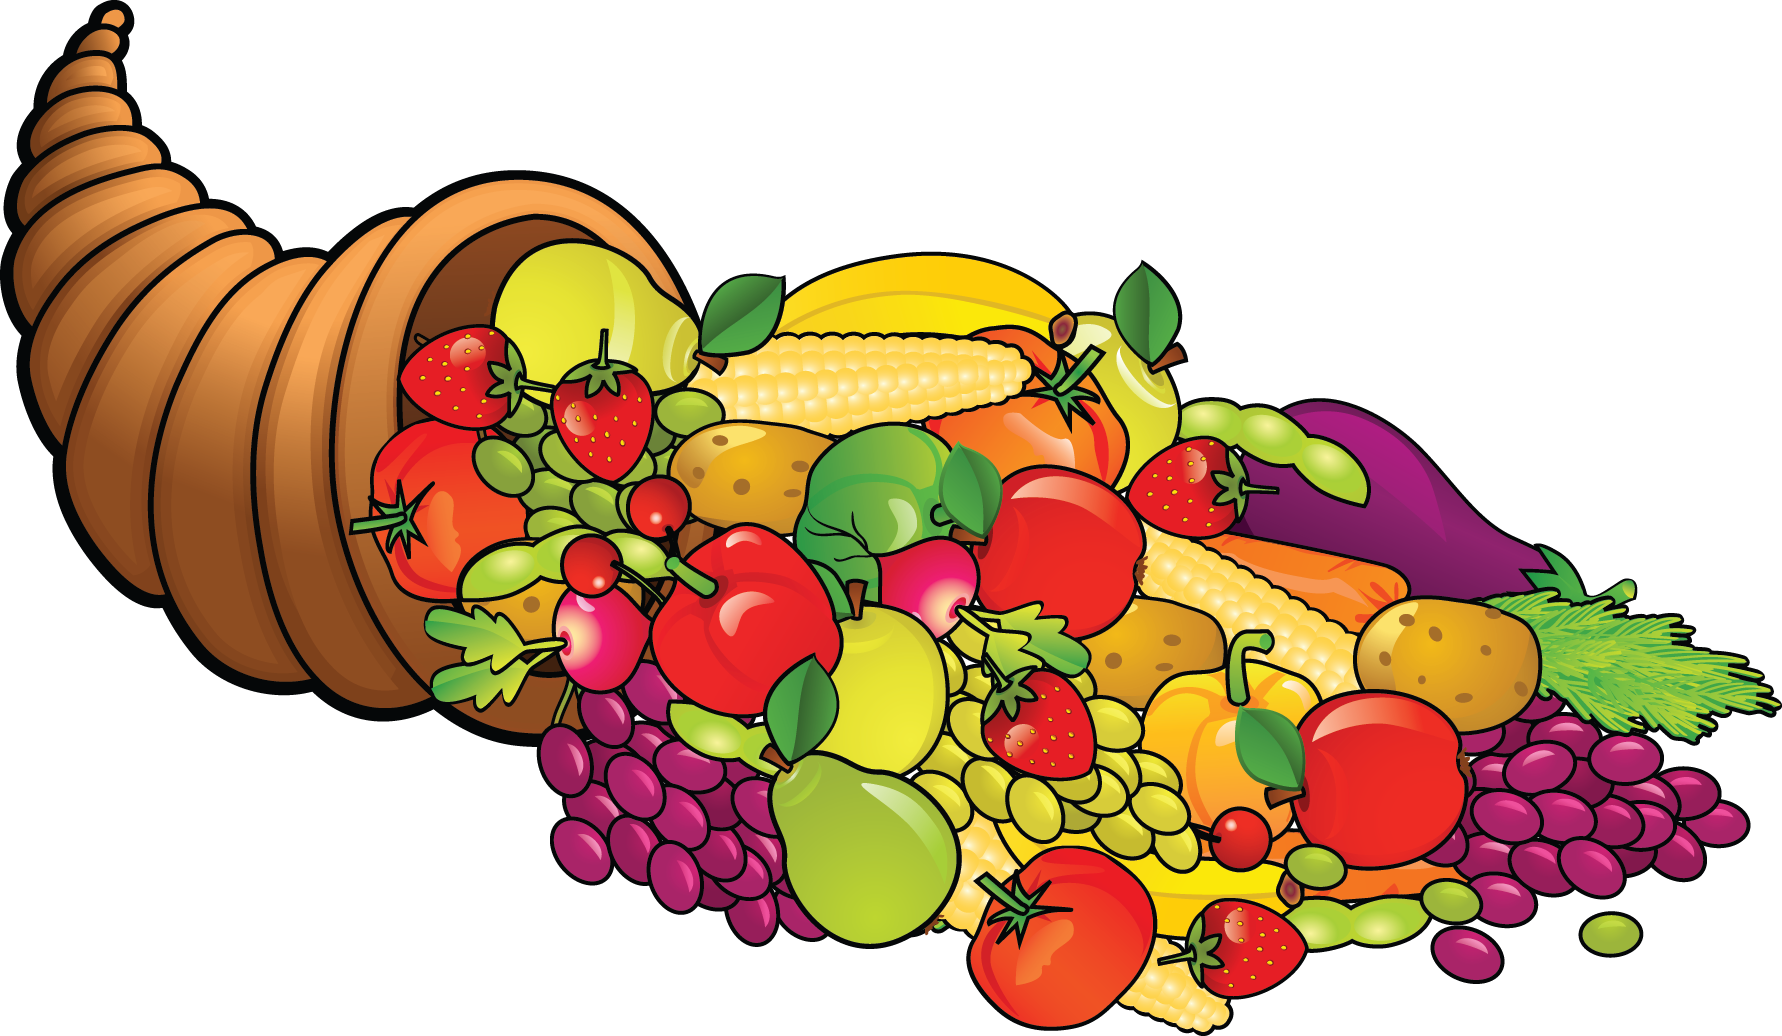 clipart food-clipart food-10